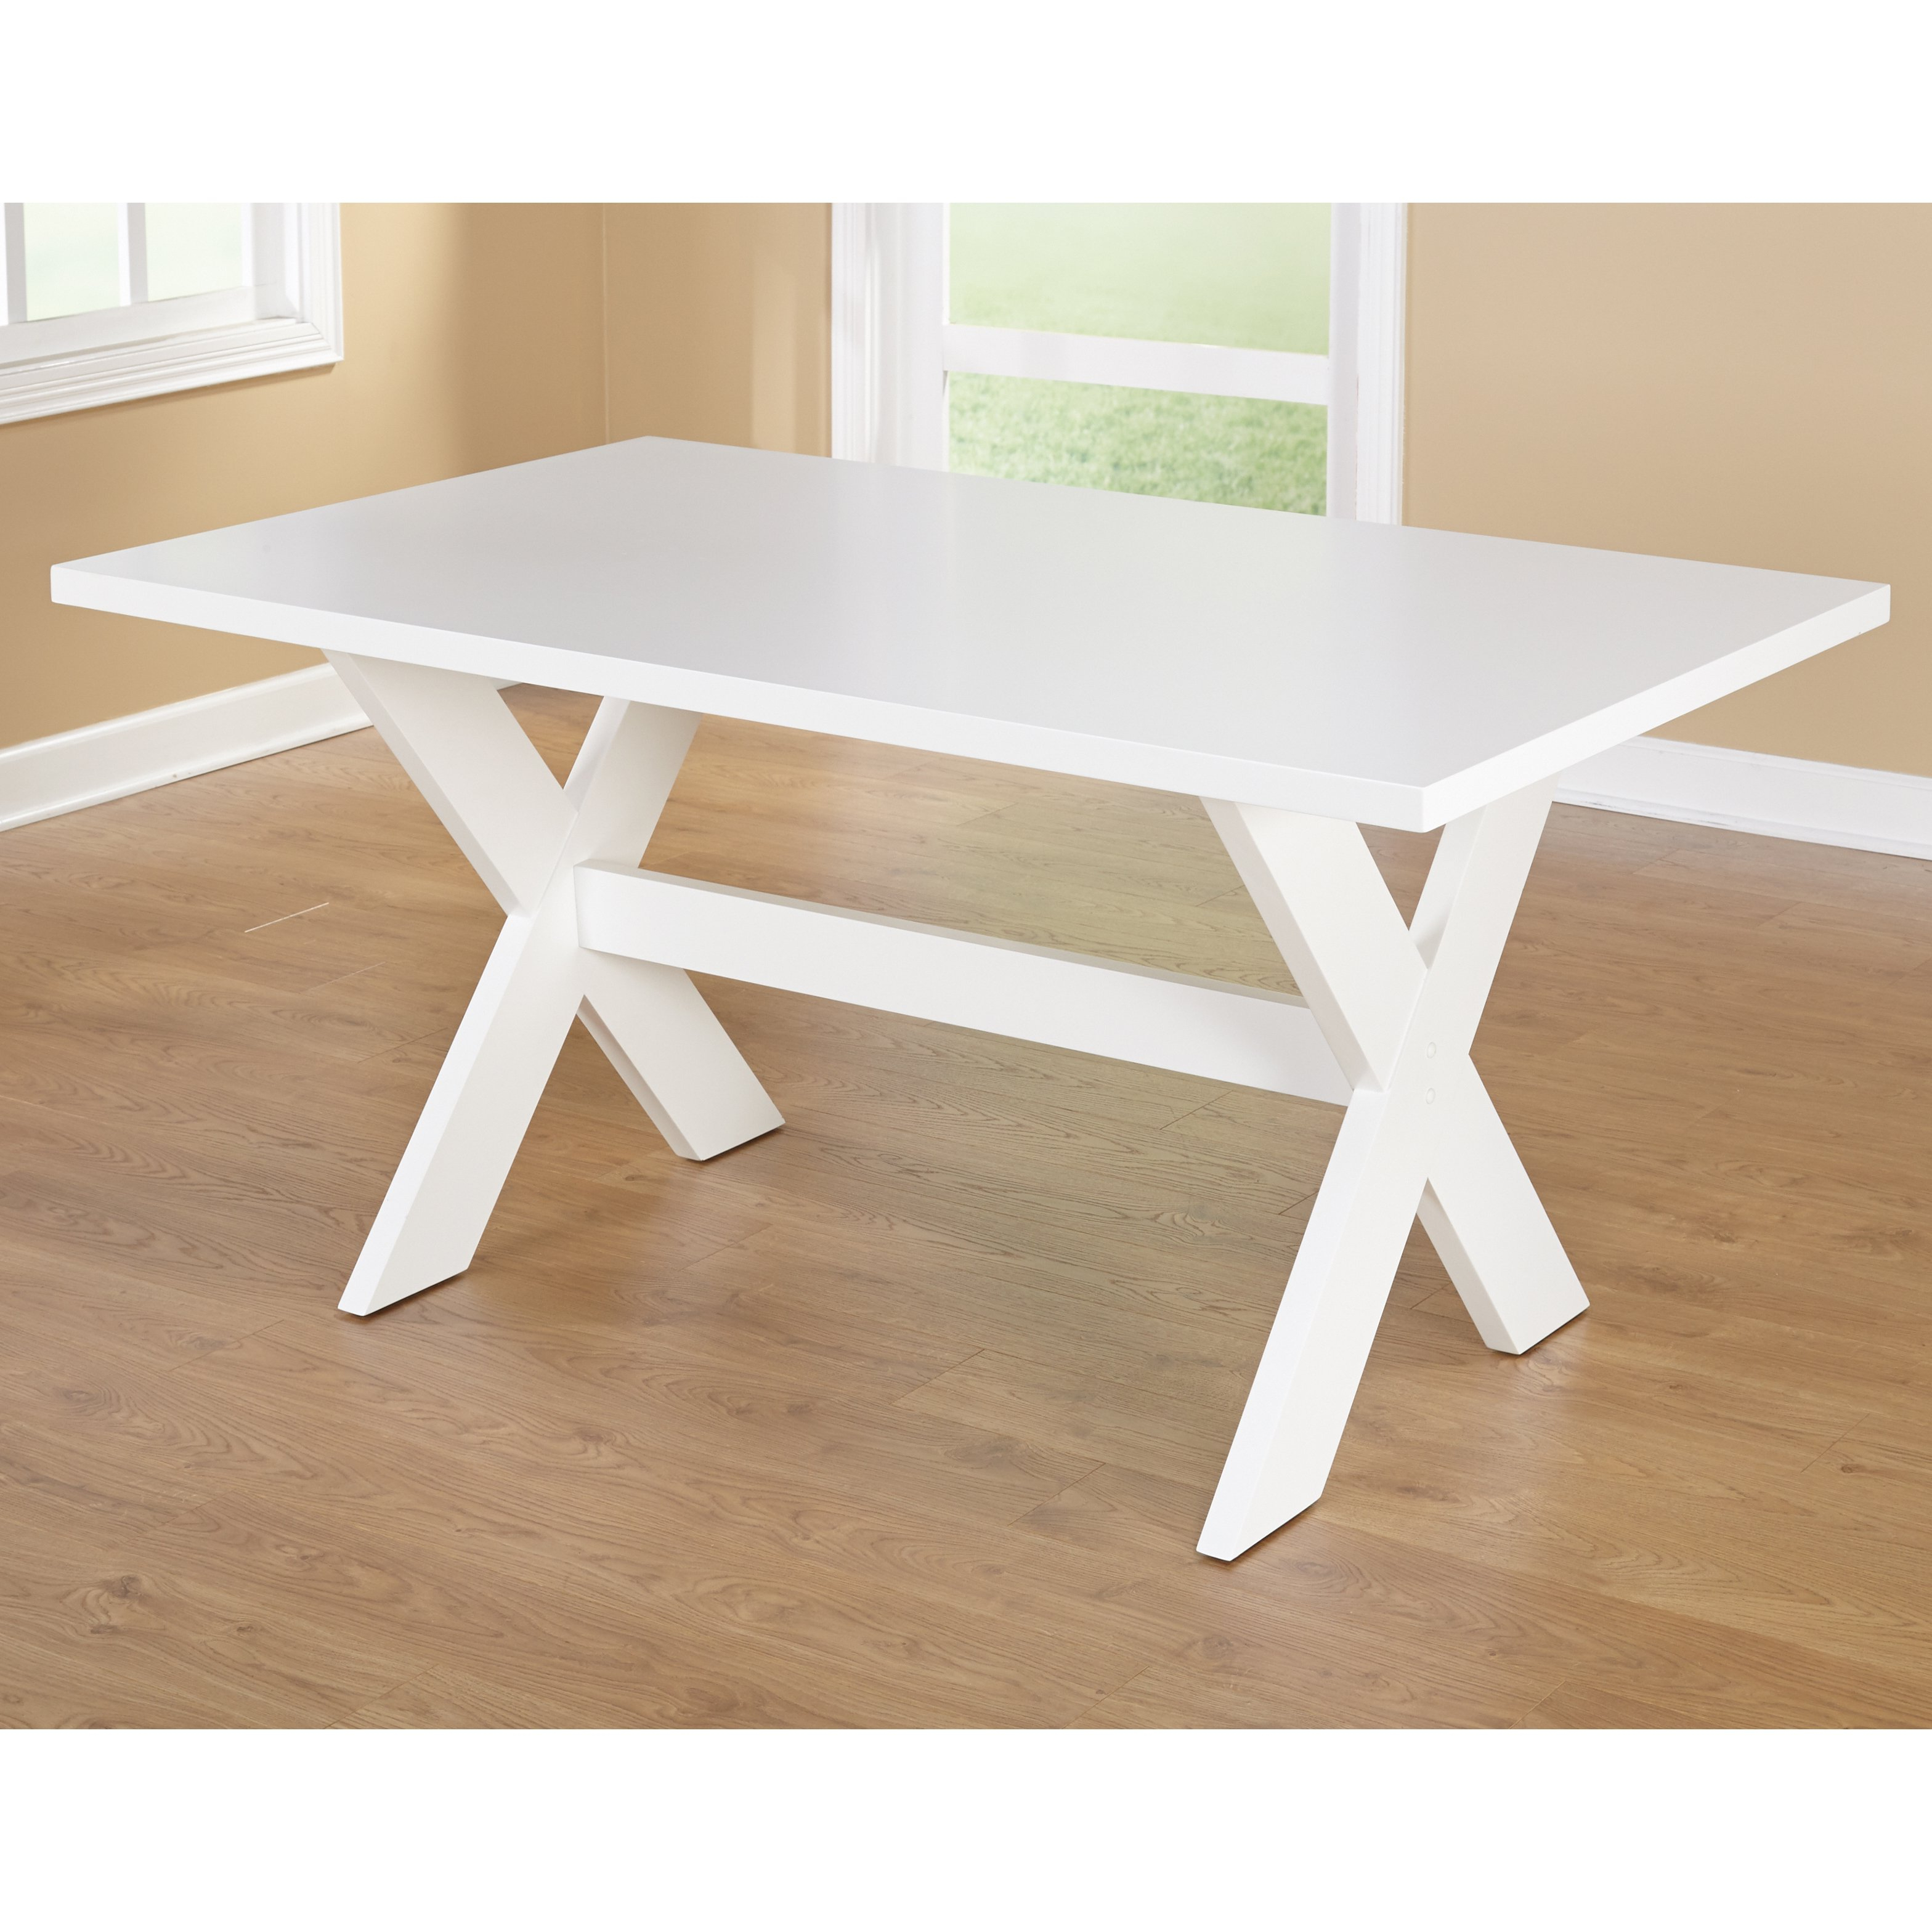 """Famous Shop Simple Living Sumner Dining Table – 29.75""""h X 35.5""""w X 51.1""""l Pertaining To Bale Rustic Grey Round Cocktail Tables With Storage (Gallery 4 of 20)"""